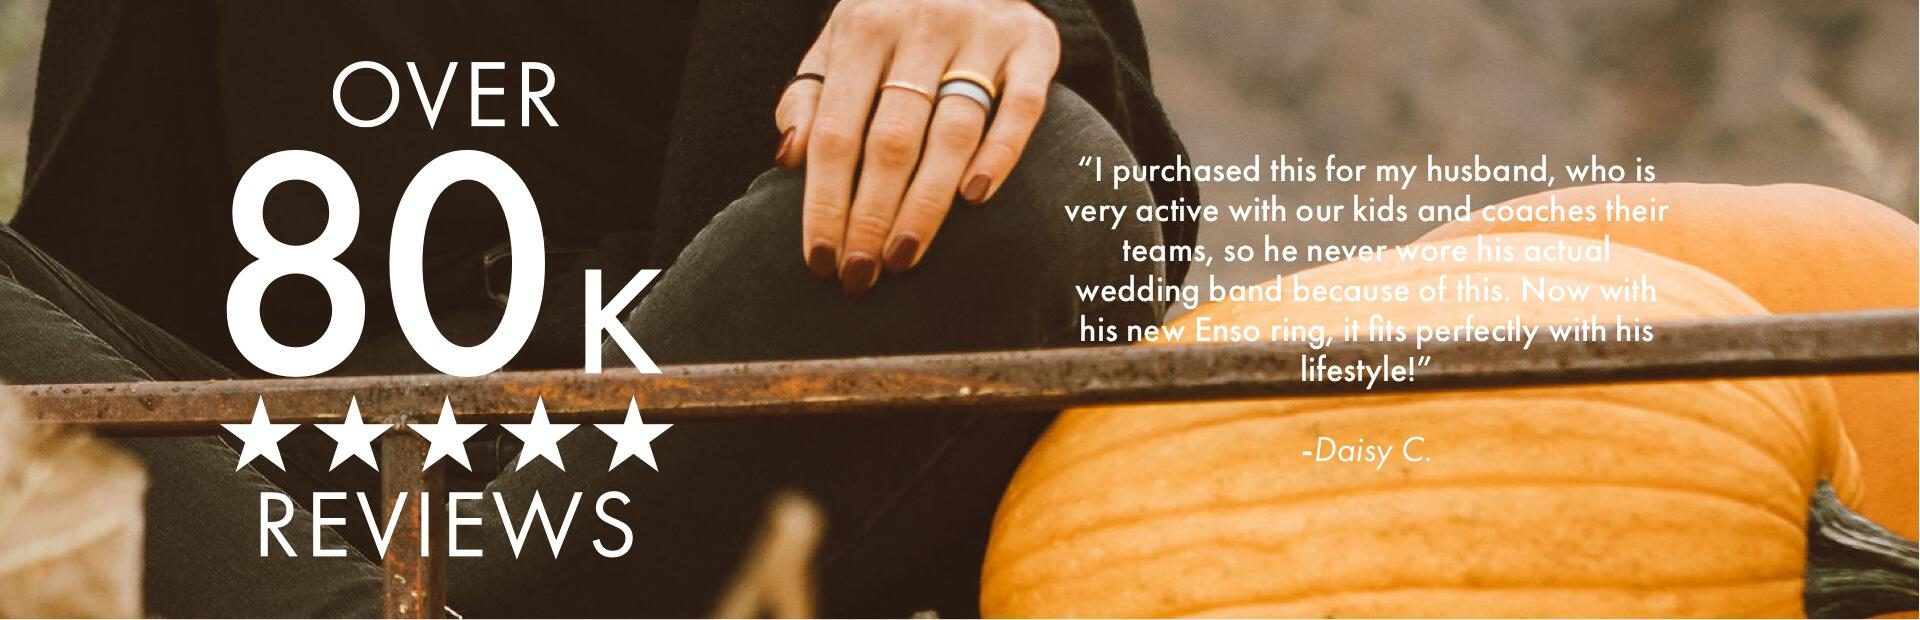 Inked Rings | Halloween | Enso Rings has over 80,000 positive reviews!